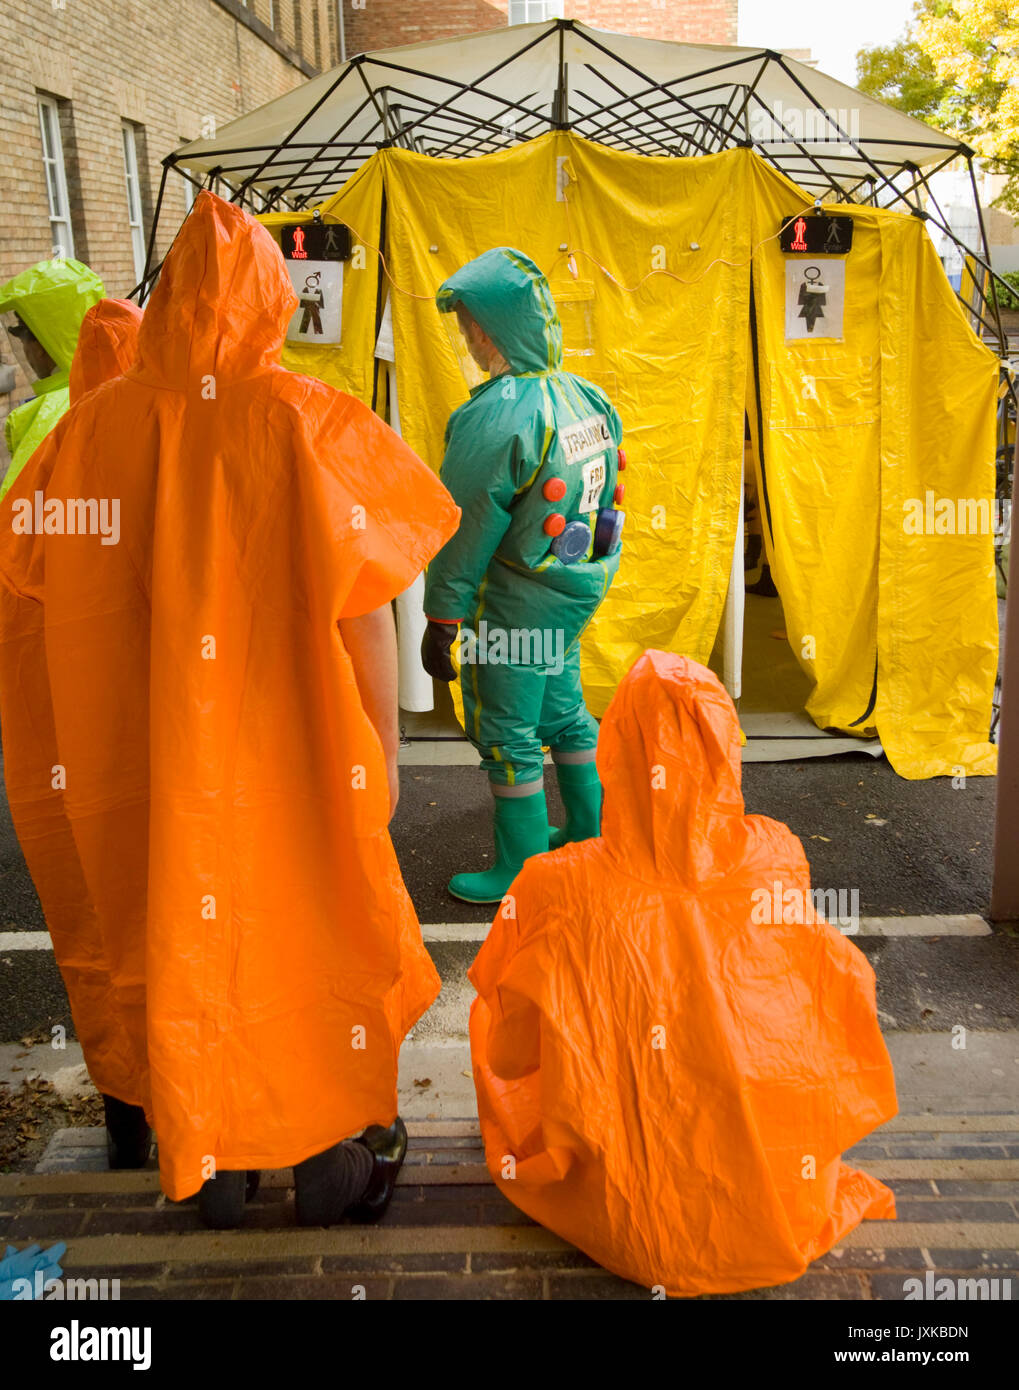 'Contaminated' subjects waiting for de-contamination shower under the supwervision of a Fie & Rescue Service co-ordinator wearing  PRPS (Powered Respi - Stock Image